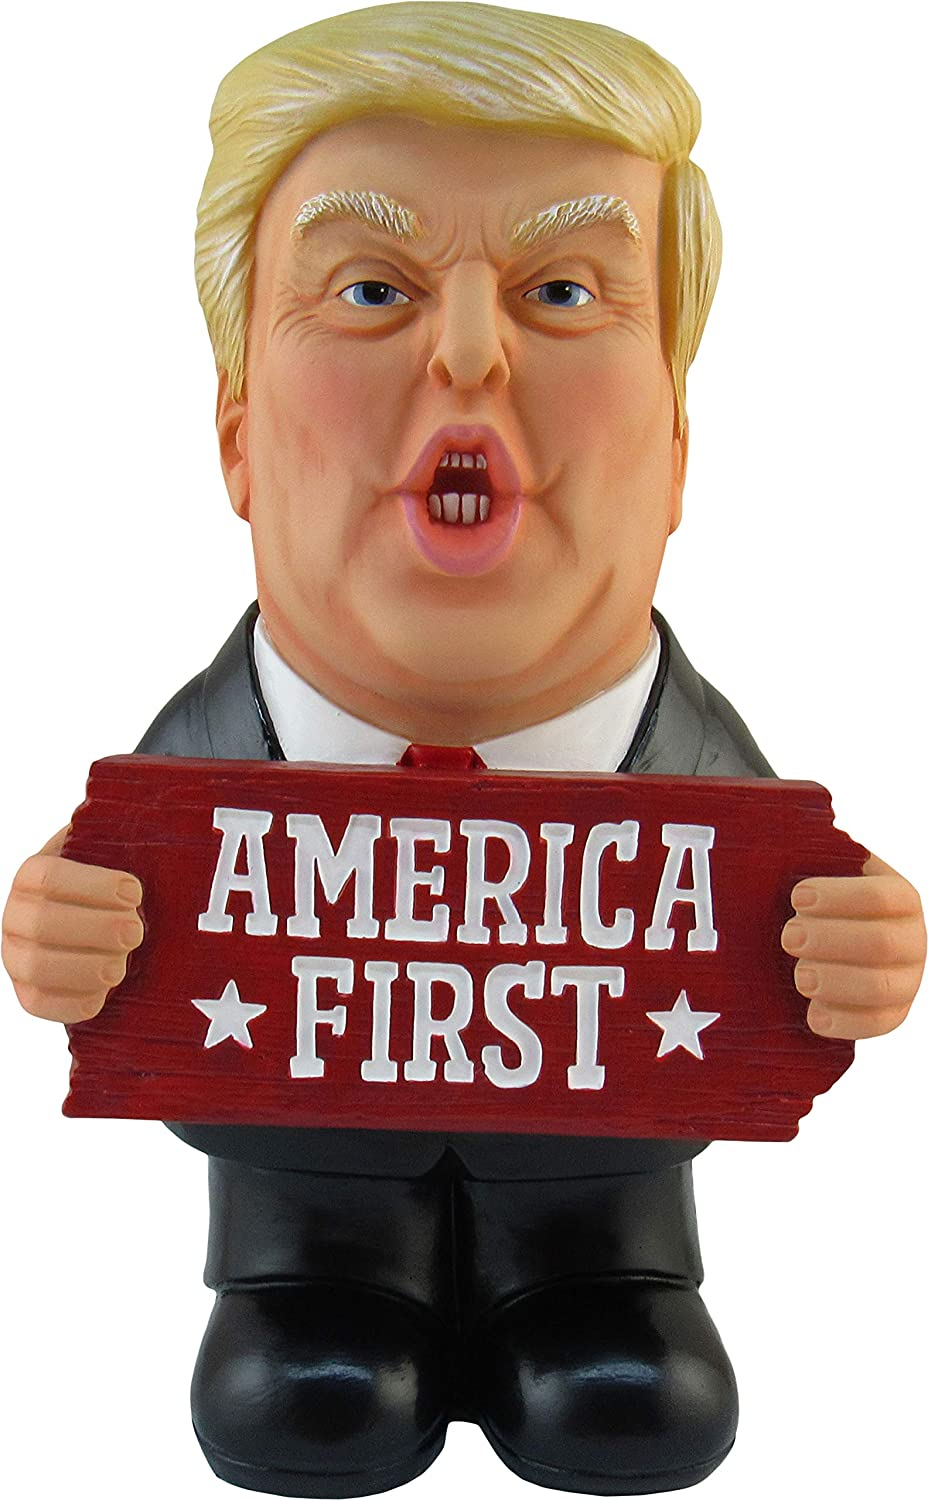 DWK - Make US Great - Collectible Trump Figure with America First Sign MAGA Patriotic Political Statue Novelty 2020 Campaign Garden Office Home Décor Accent, 9.5-inch